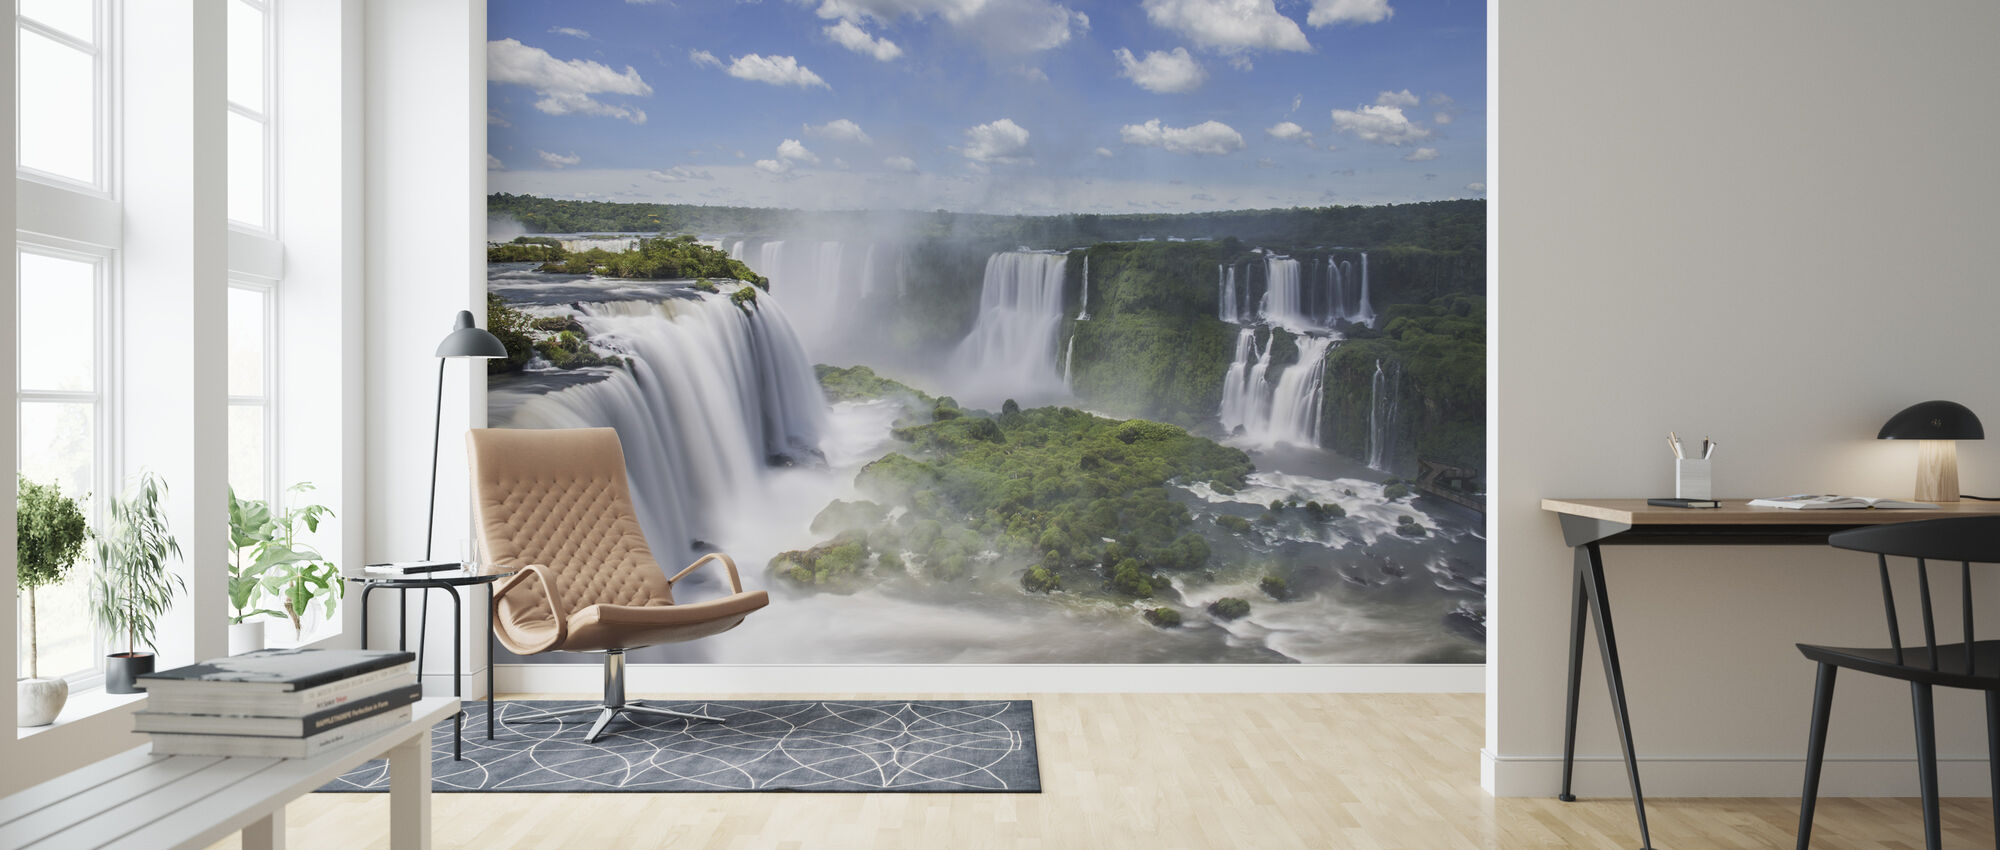 Iguazu Waterfall - Wallpaper - Living Room